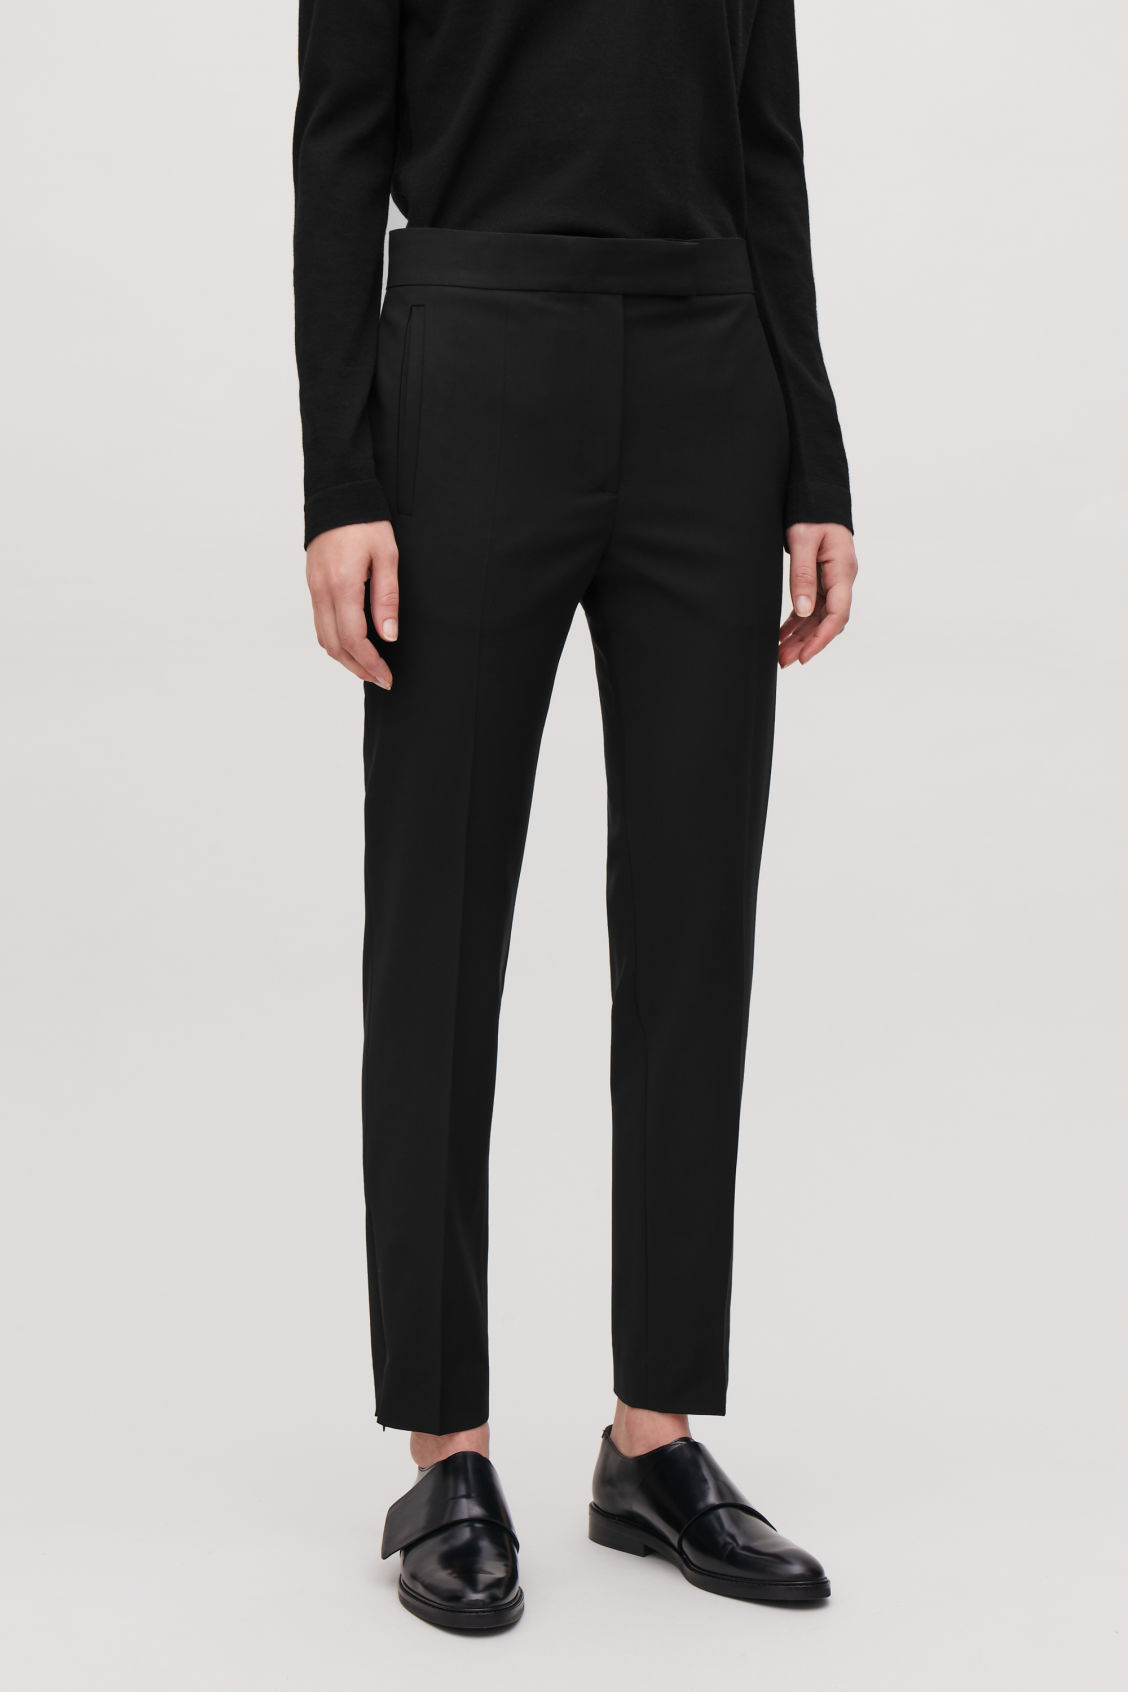 Model side image of Cos slim tailored trousers with zips in black